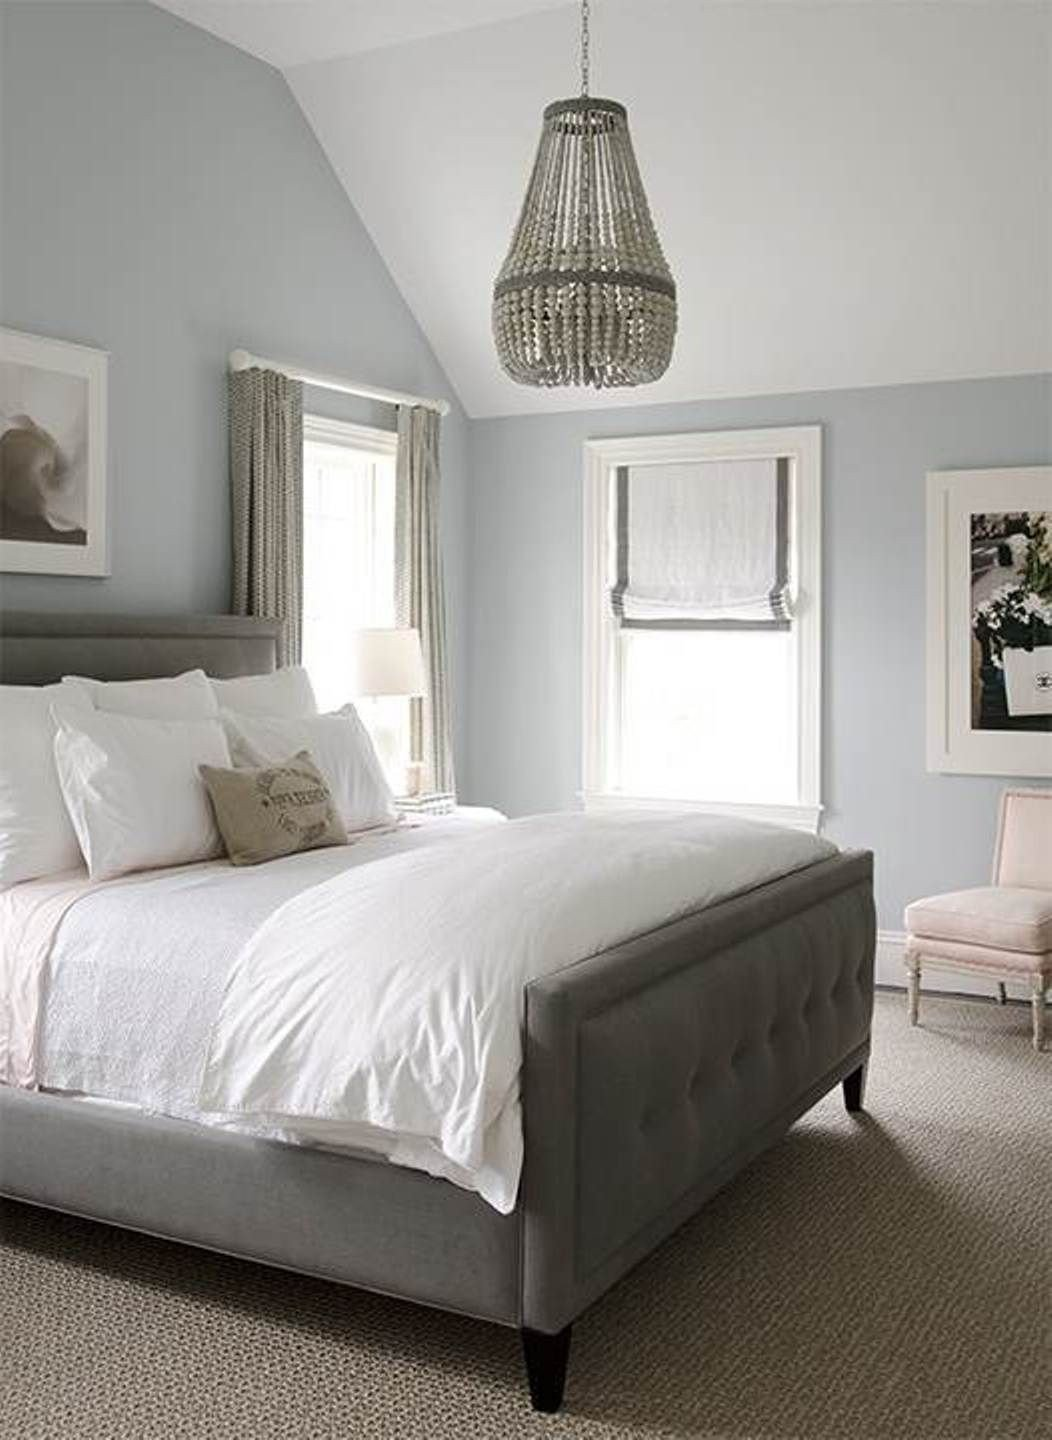 Small Master Bedroom Design Ideas Unique Love the Grey Cute Master Bedroom Ideas A Bud